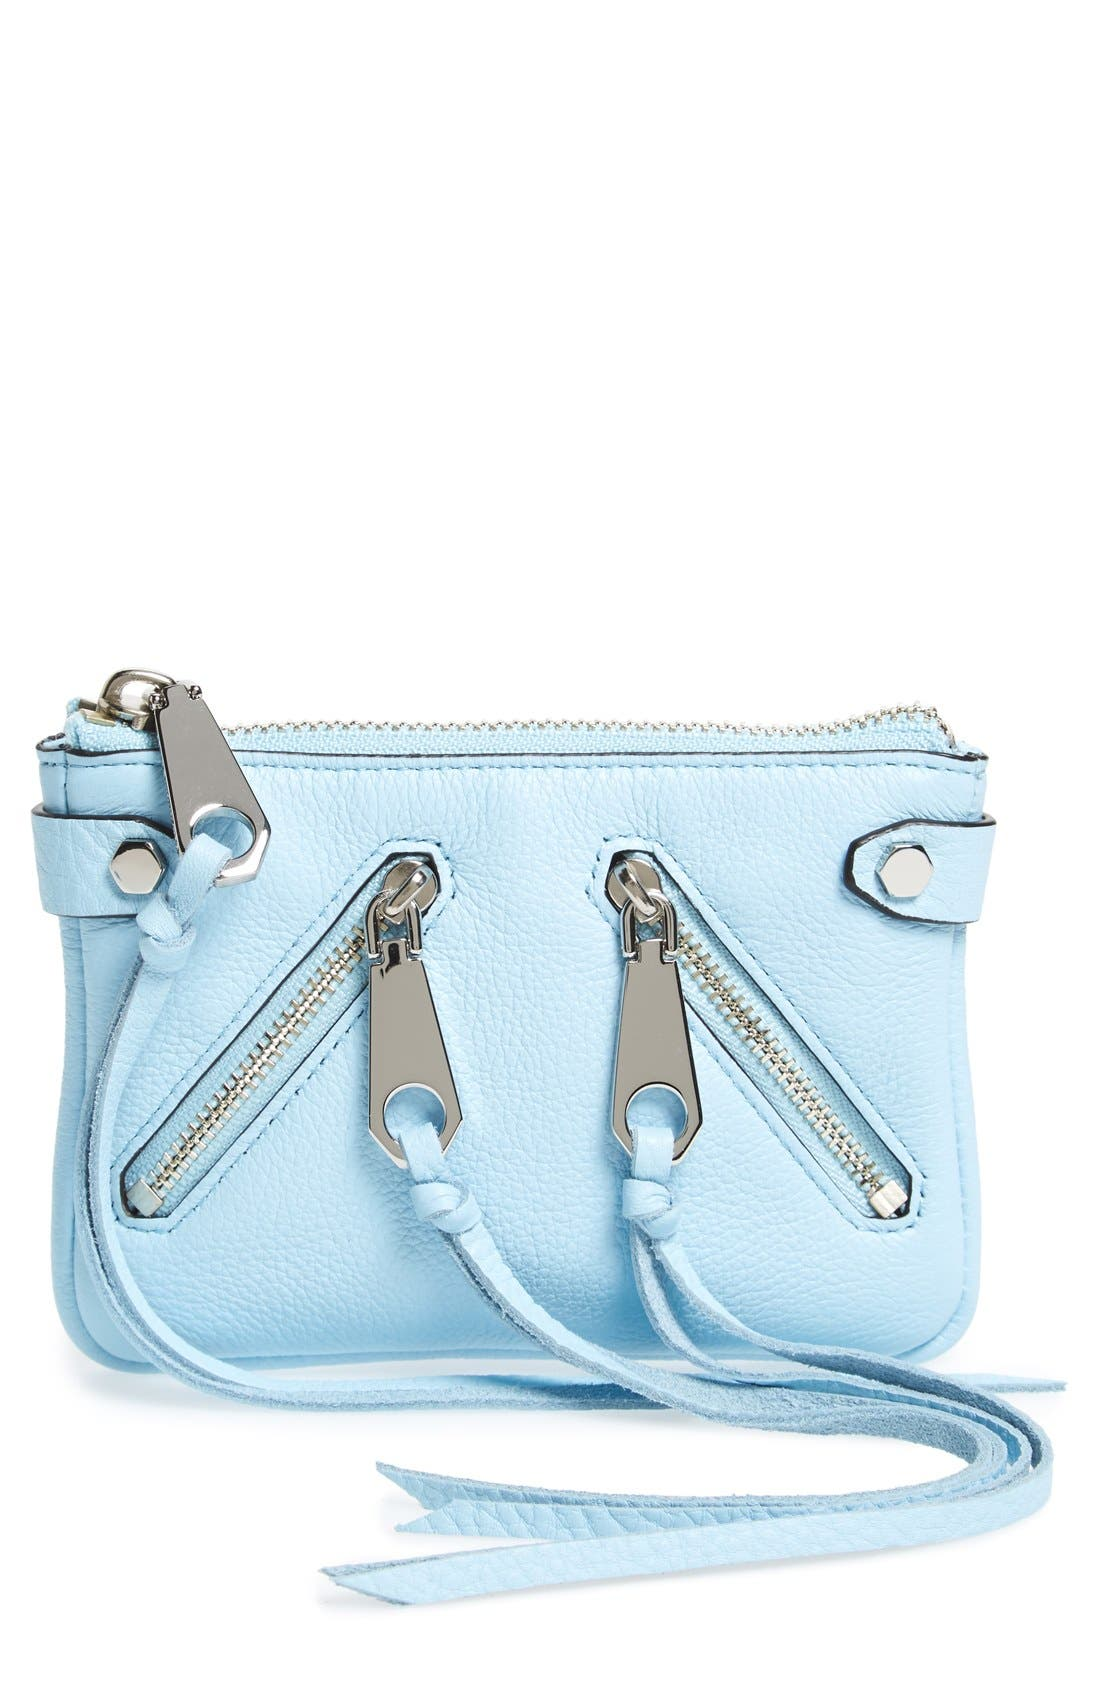 Alternate Image 1 Selected - Rebecca Minkoff 'Moto' Leather Pouch